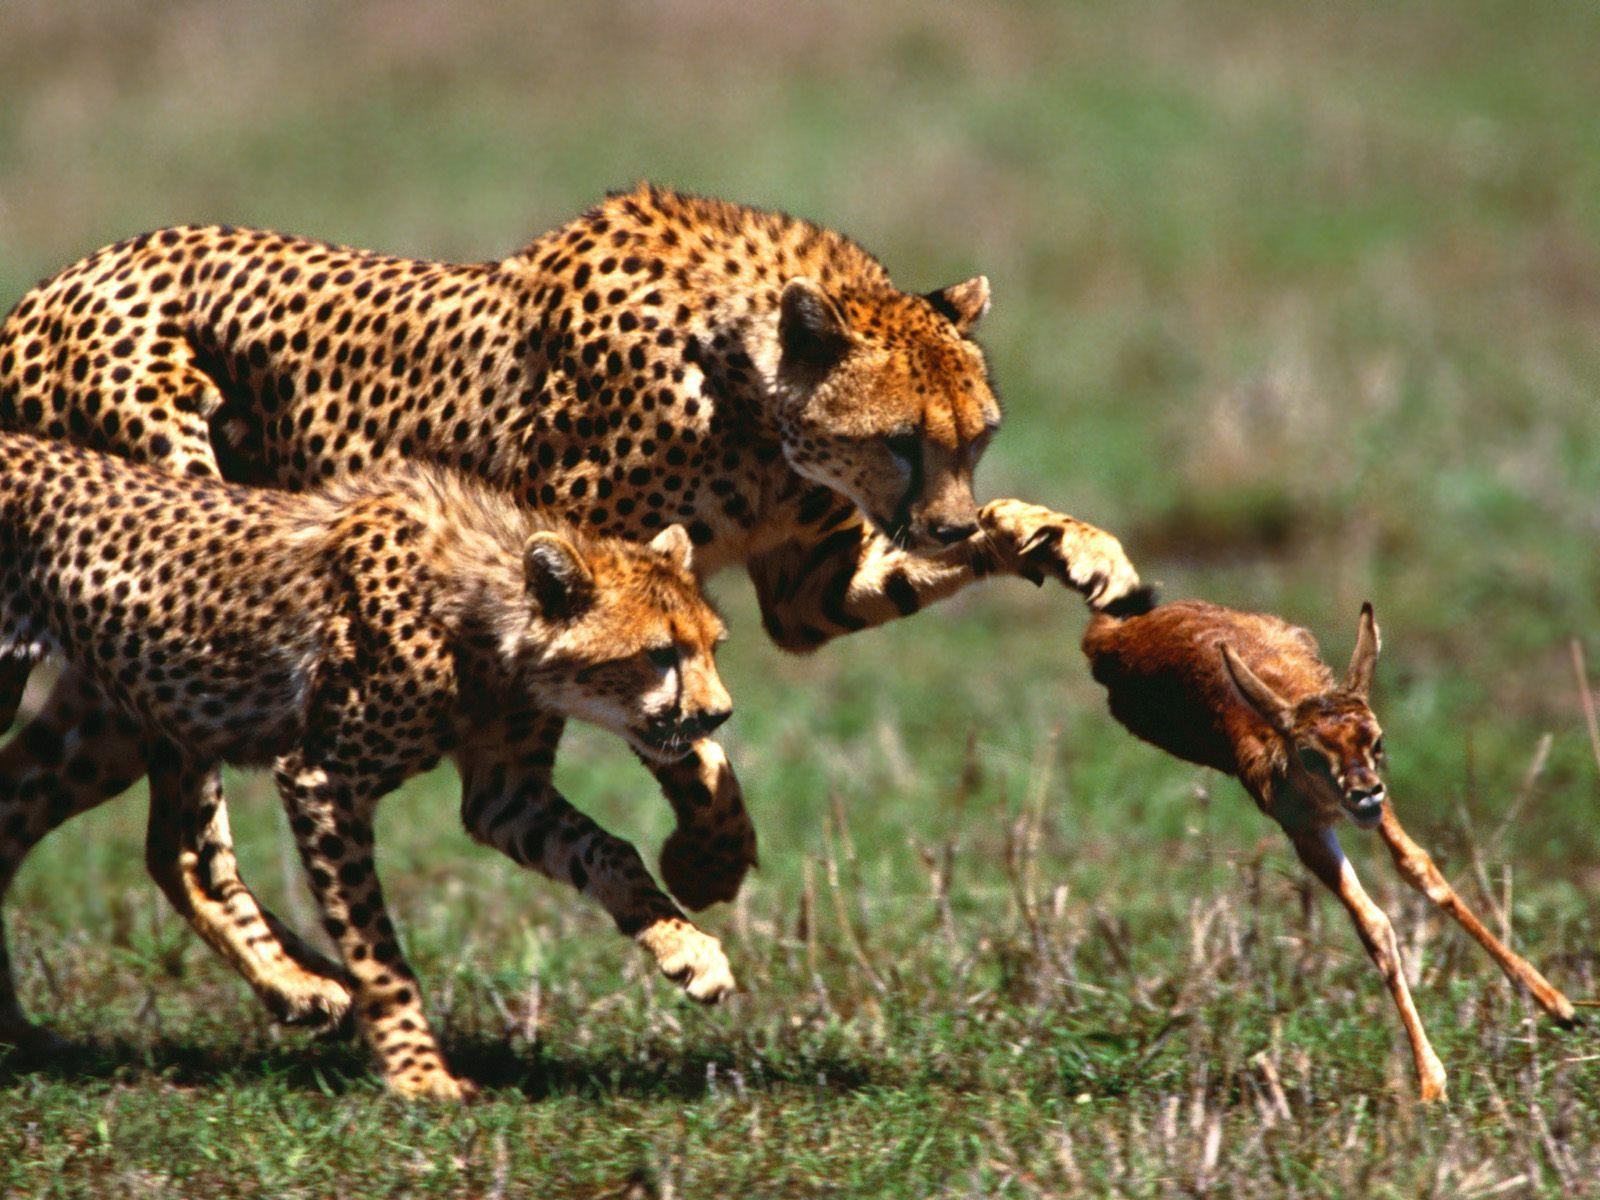 Pictures of cheetahs hunting baby deer